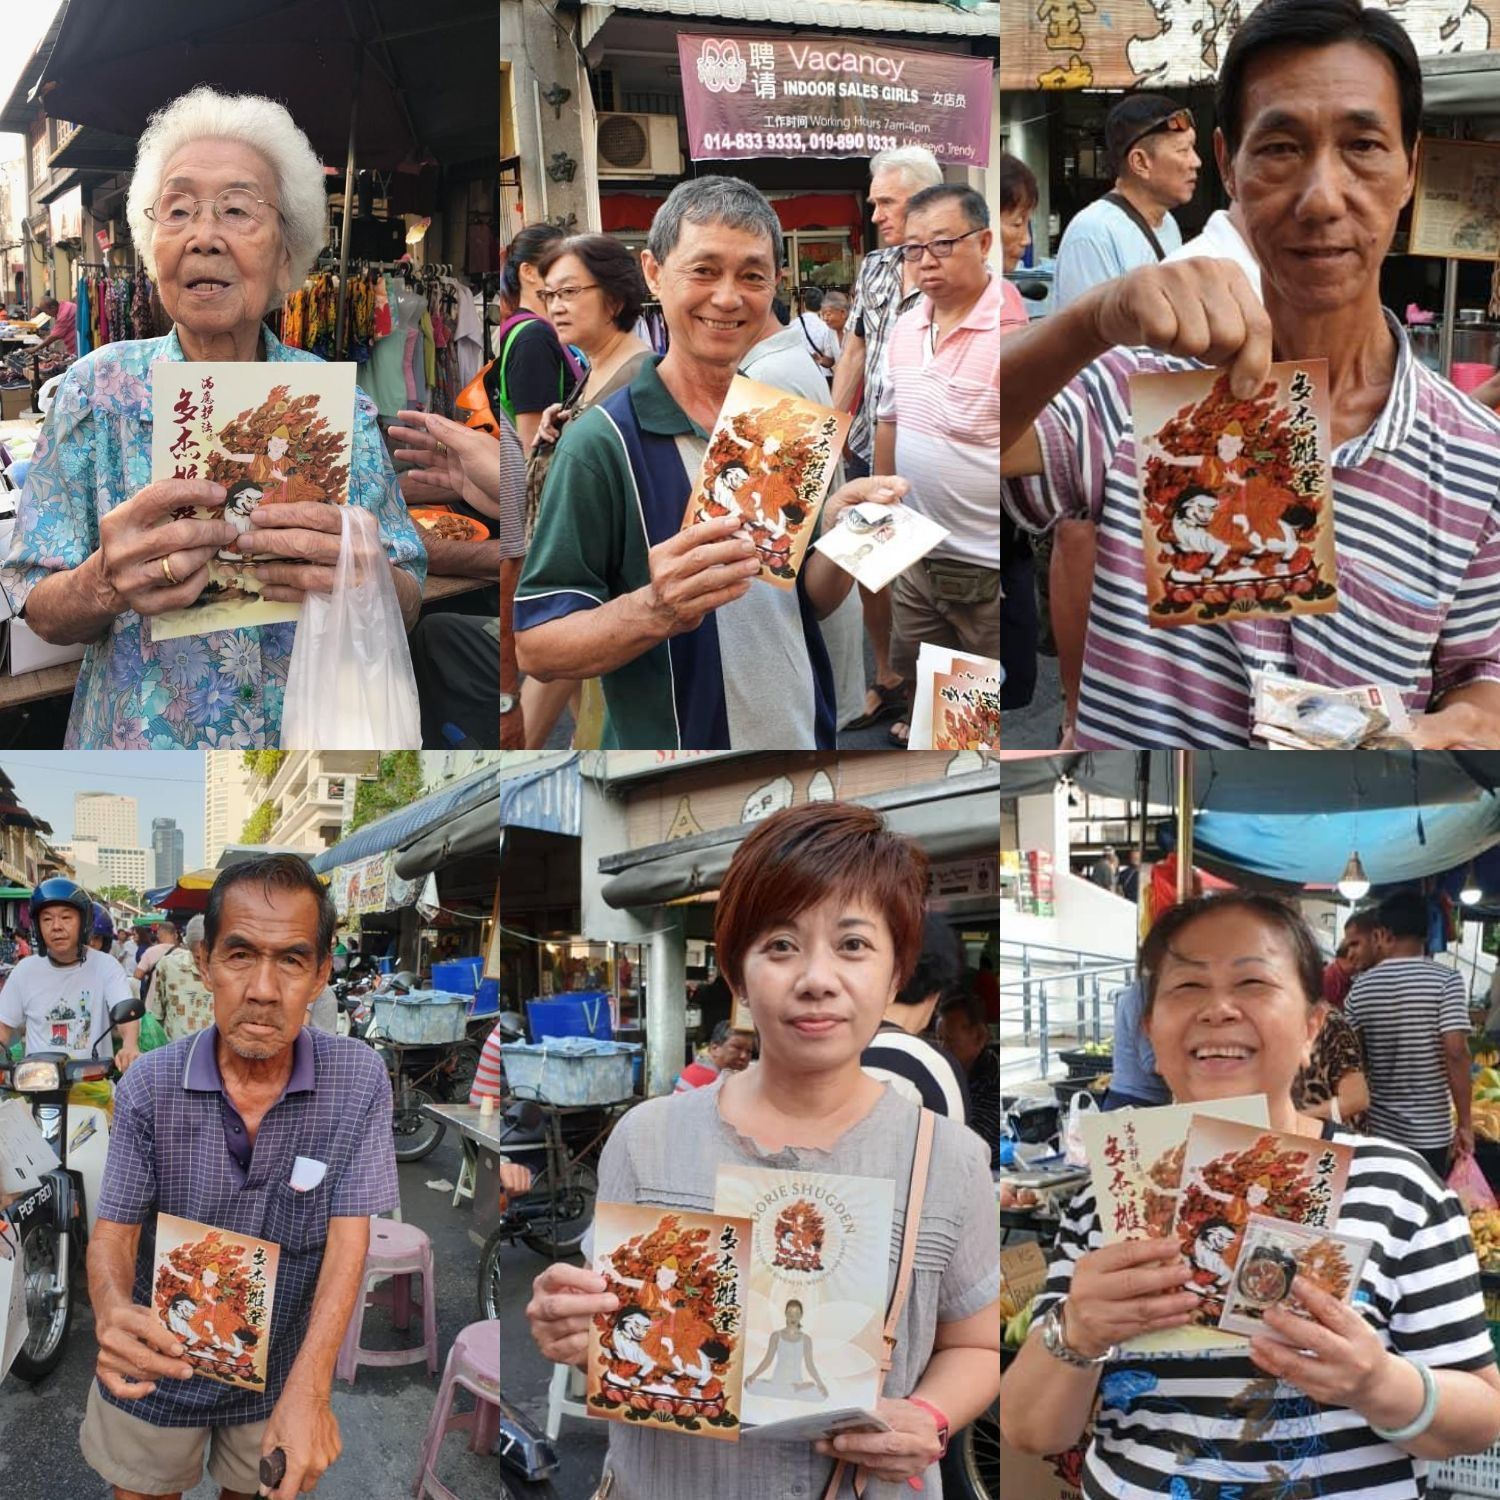 People in George Town, Penang, Malaysia happily receiving